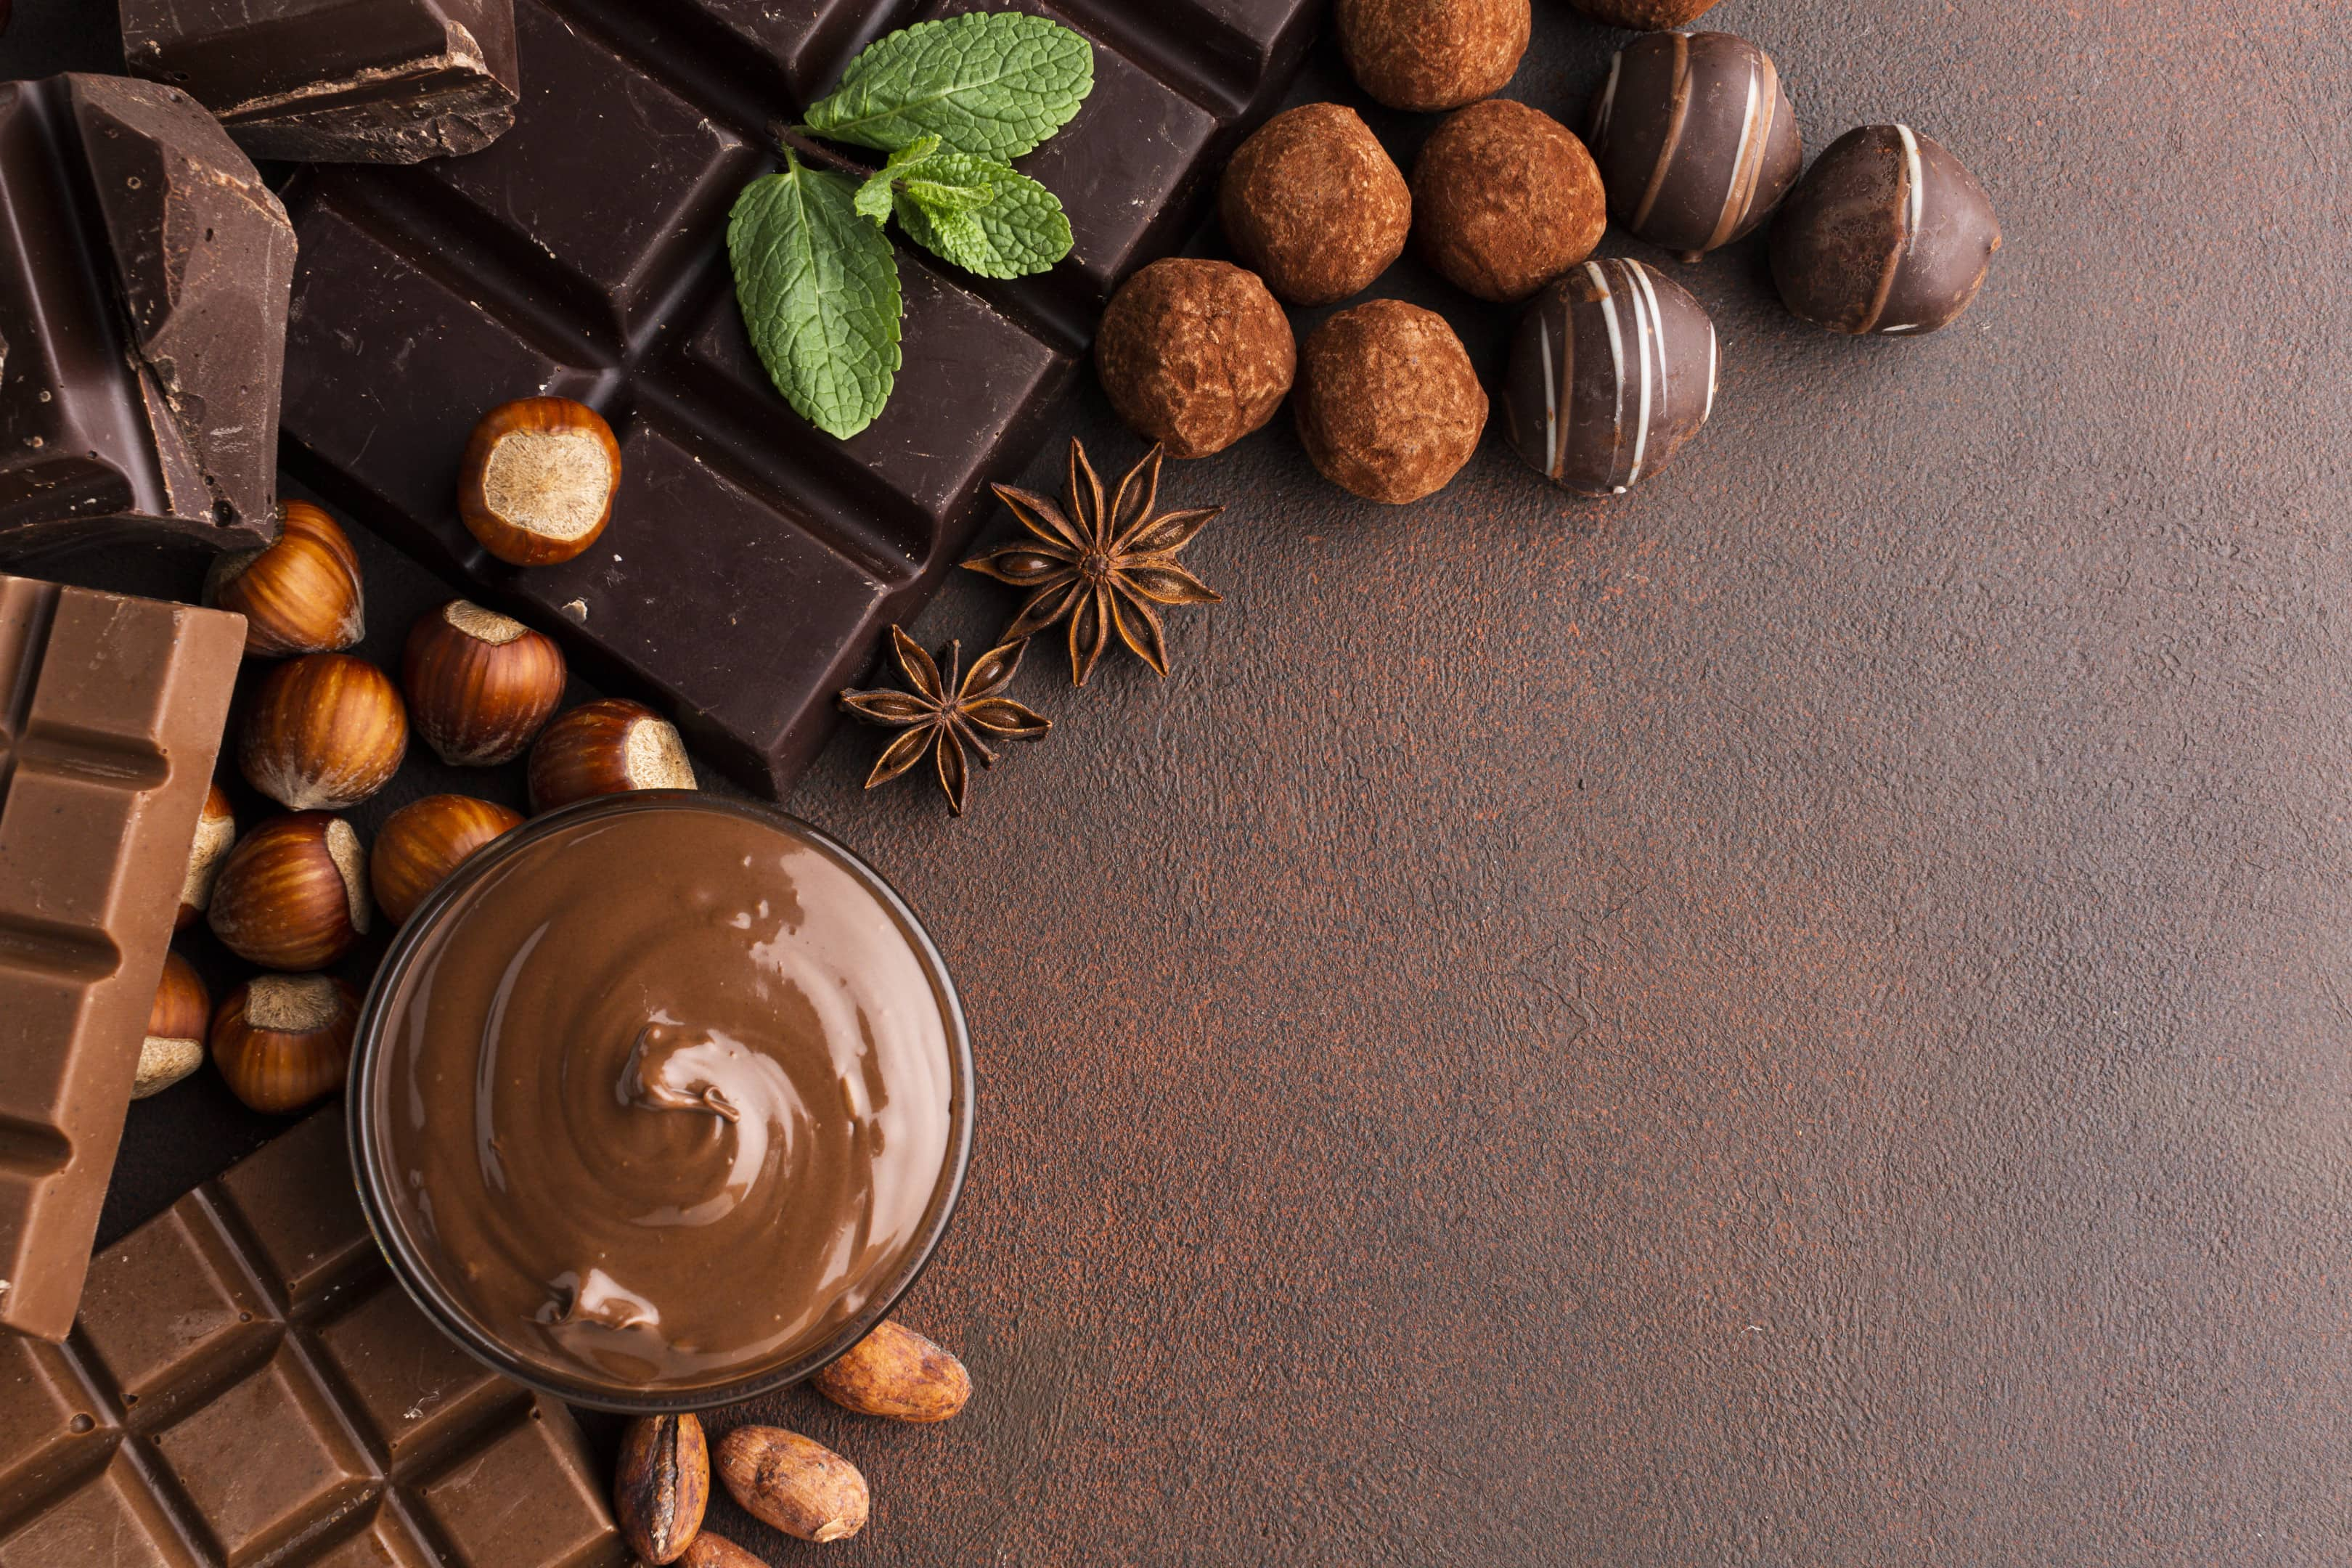 Variety of chocolate on brown surface